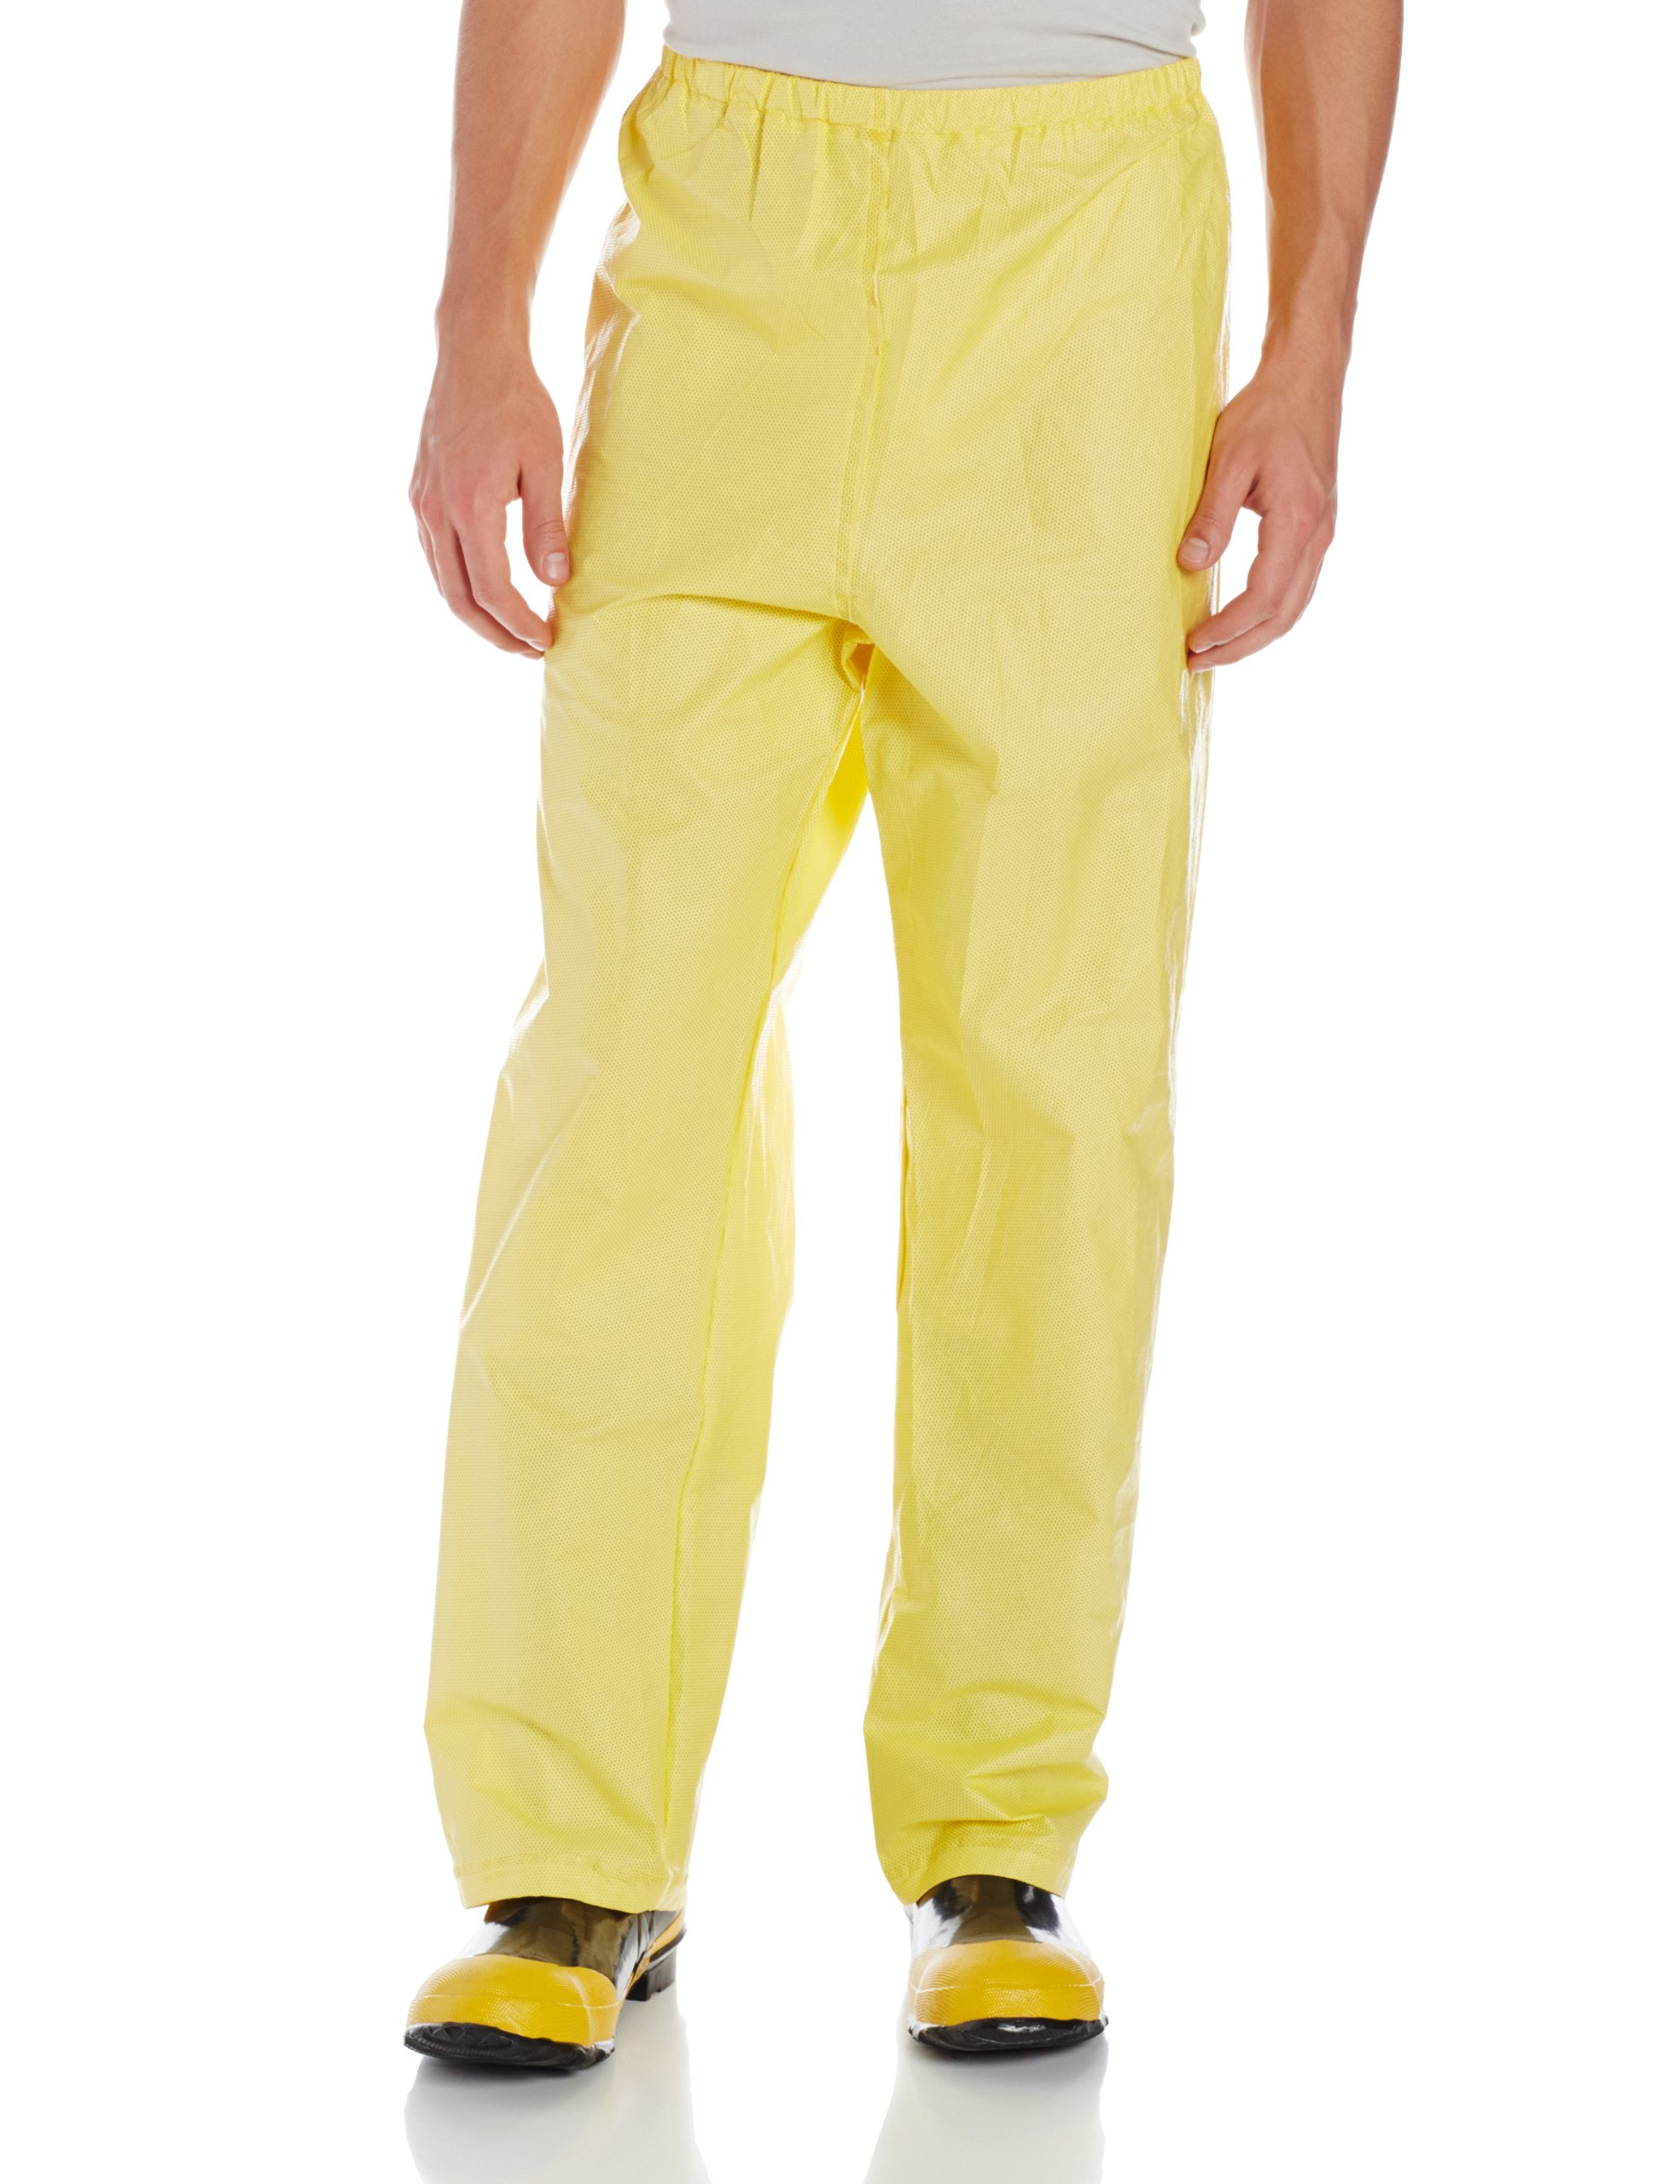 O2 Rainwear Original Rain Pants, Yellow, Small